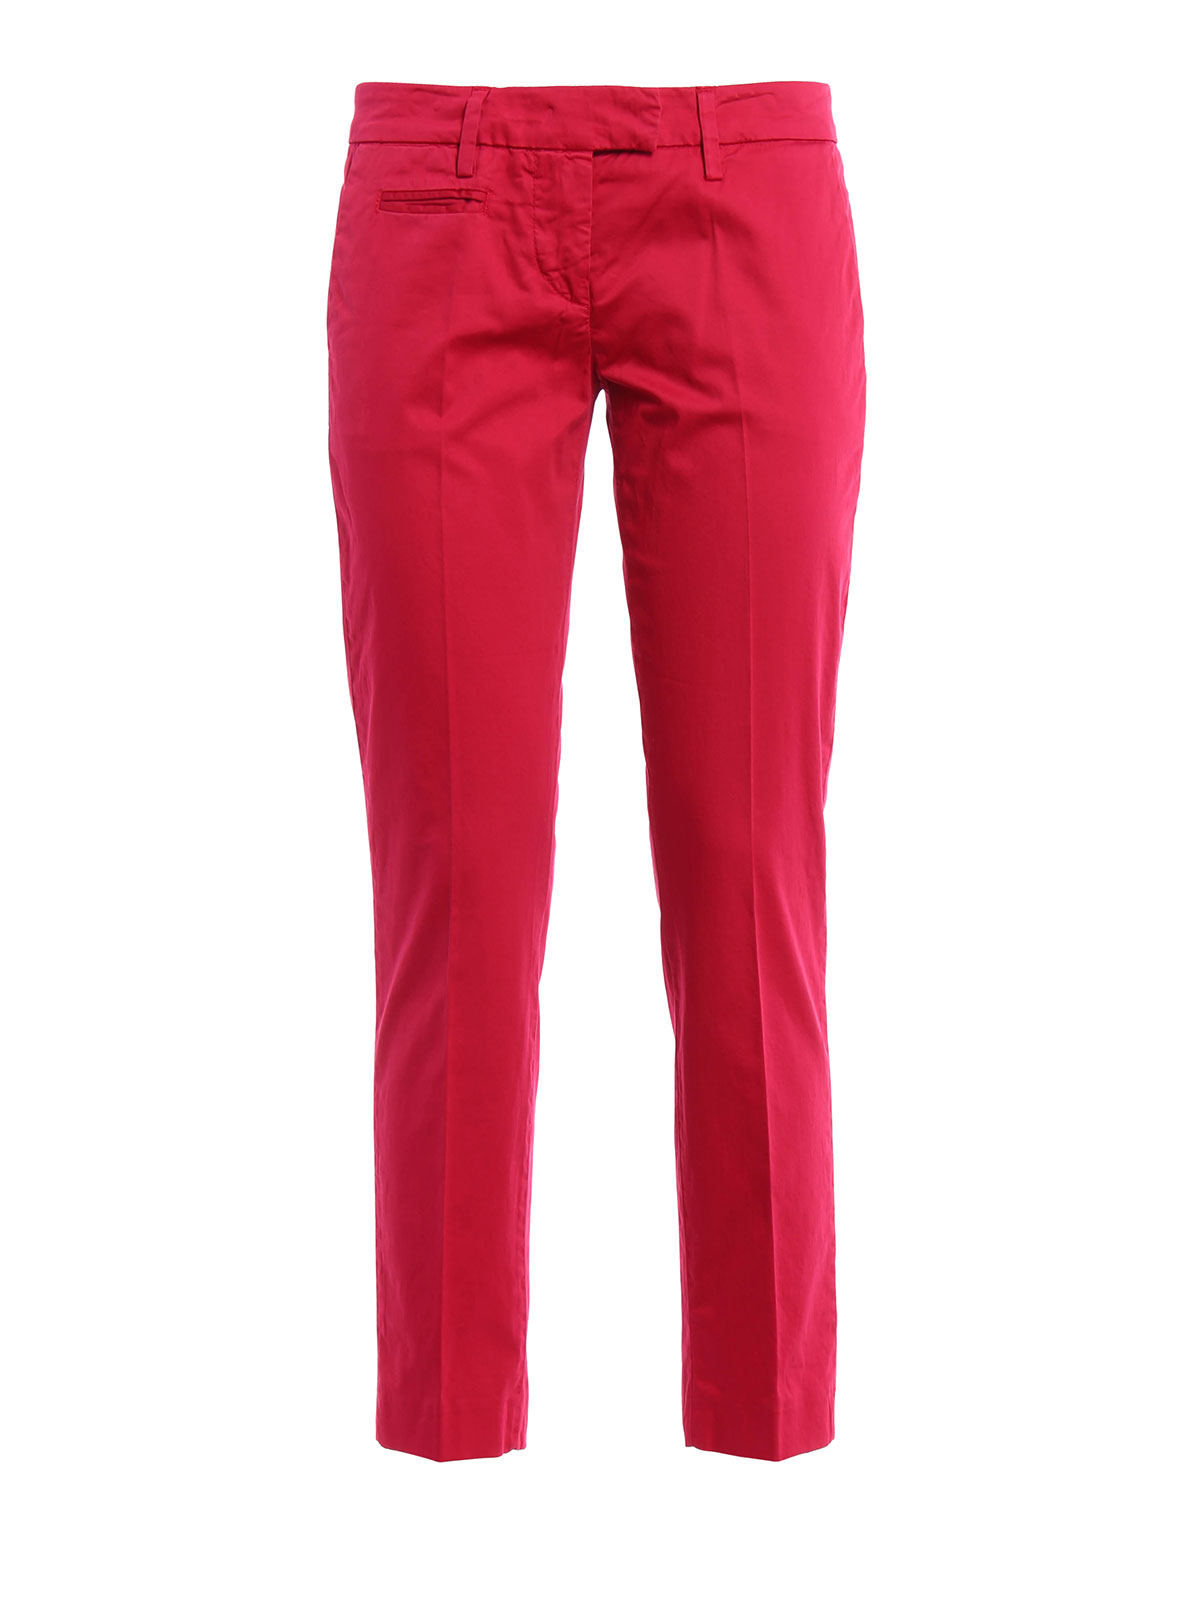 cropped trousers - Red Dondup Marketable Cheap Sale Low Price 2018 New EMxR3KYZmb